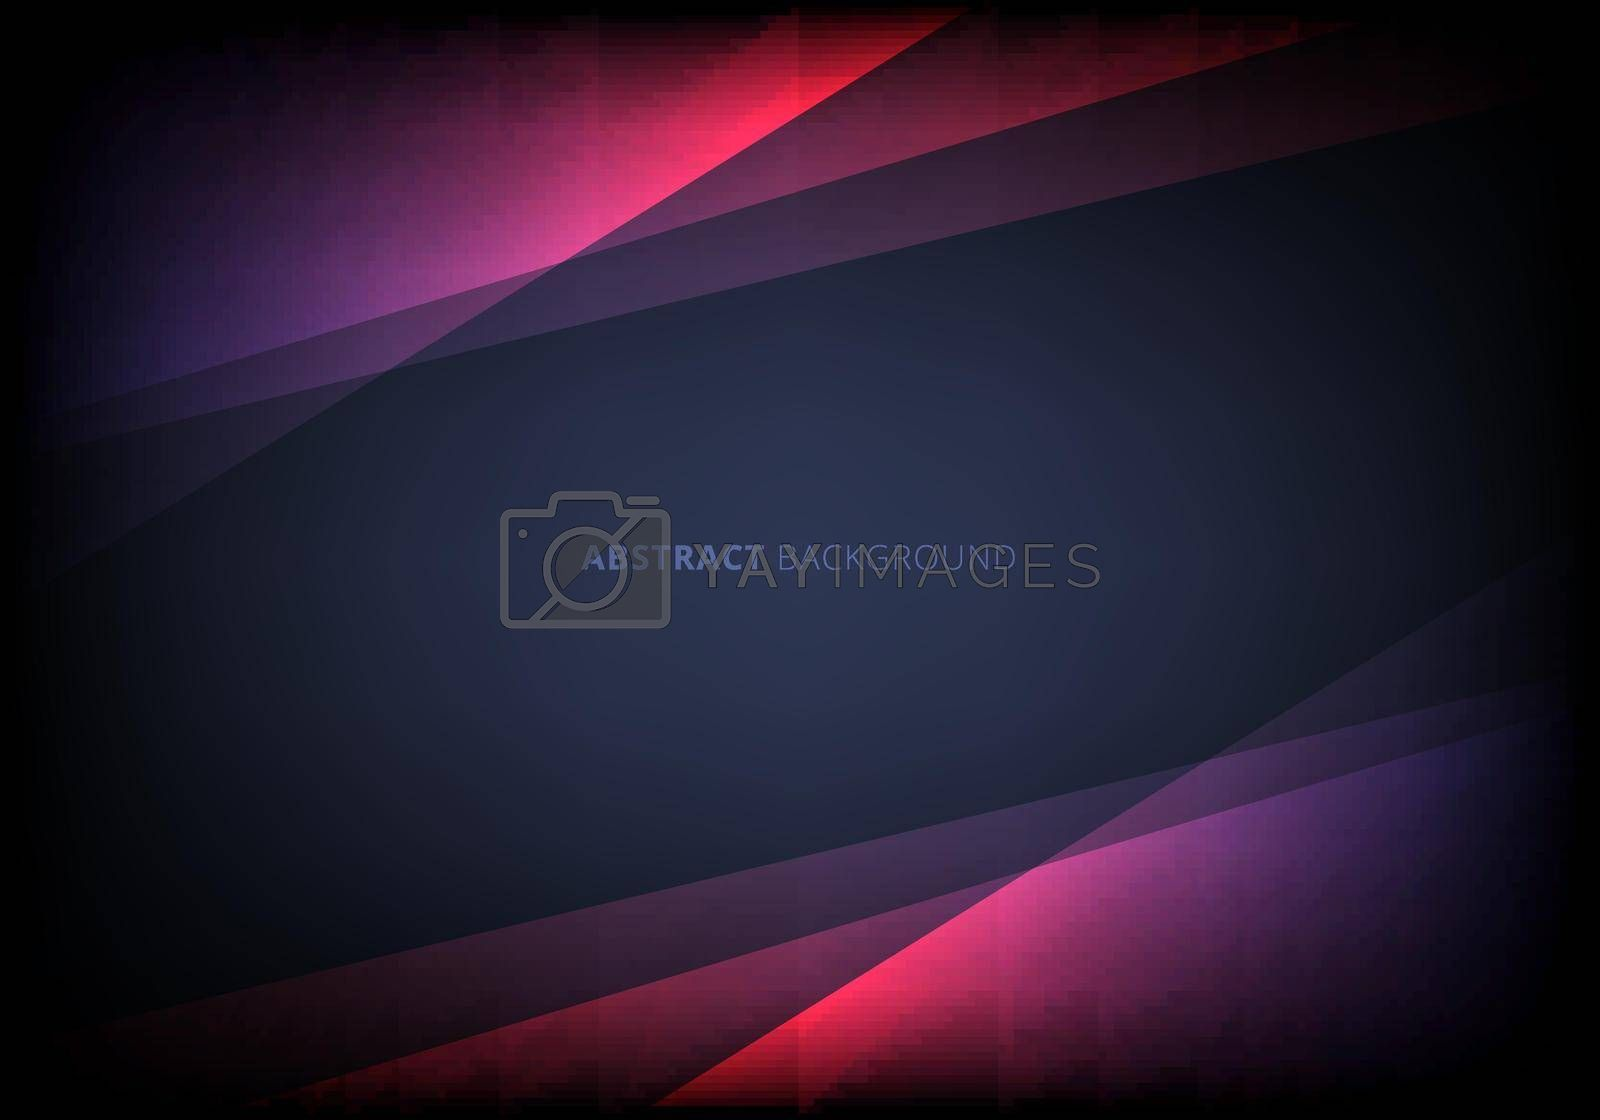 Abstract template pink triangle overlapping layered with lighting effect on dark blue background. Vector illustration